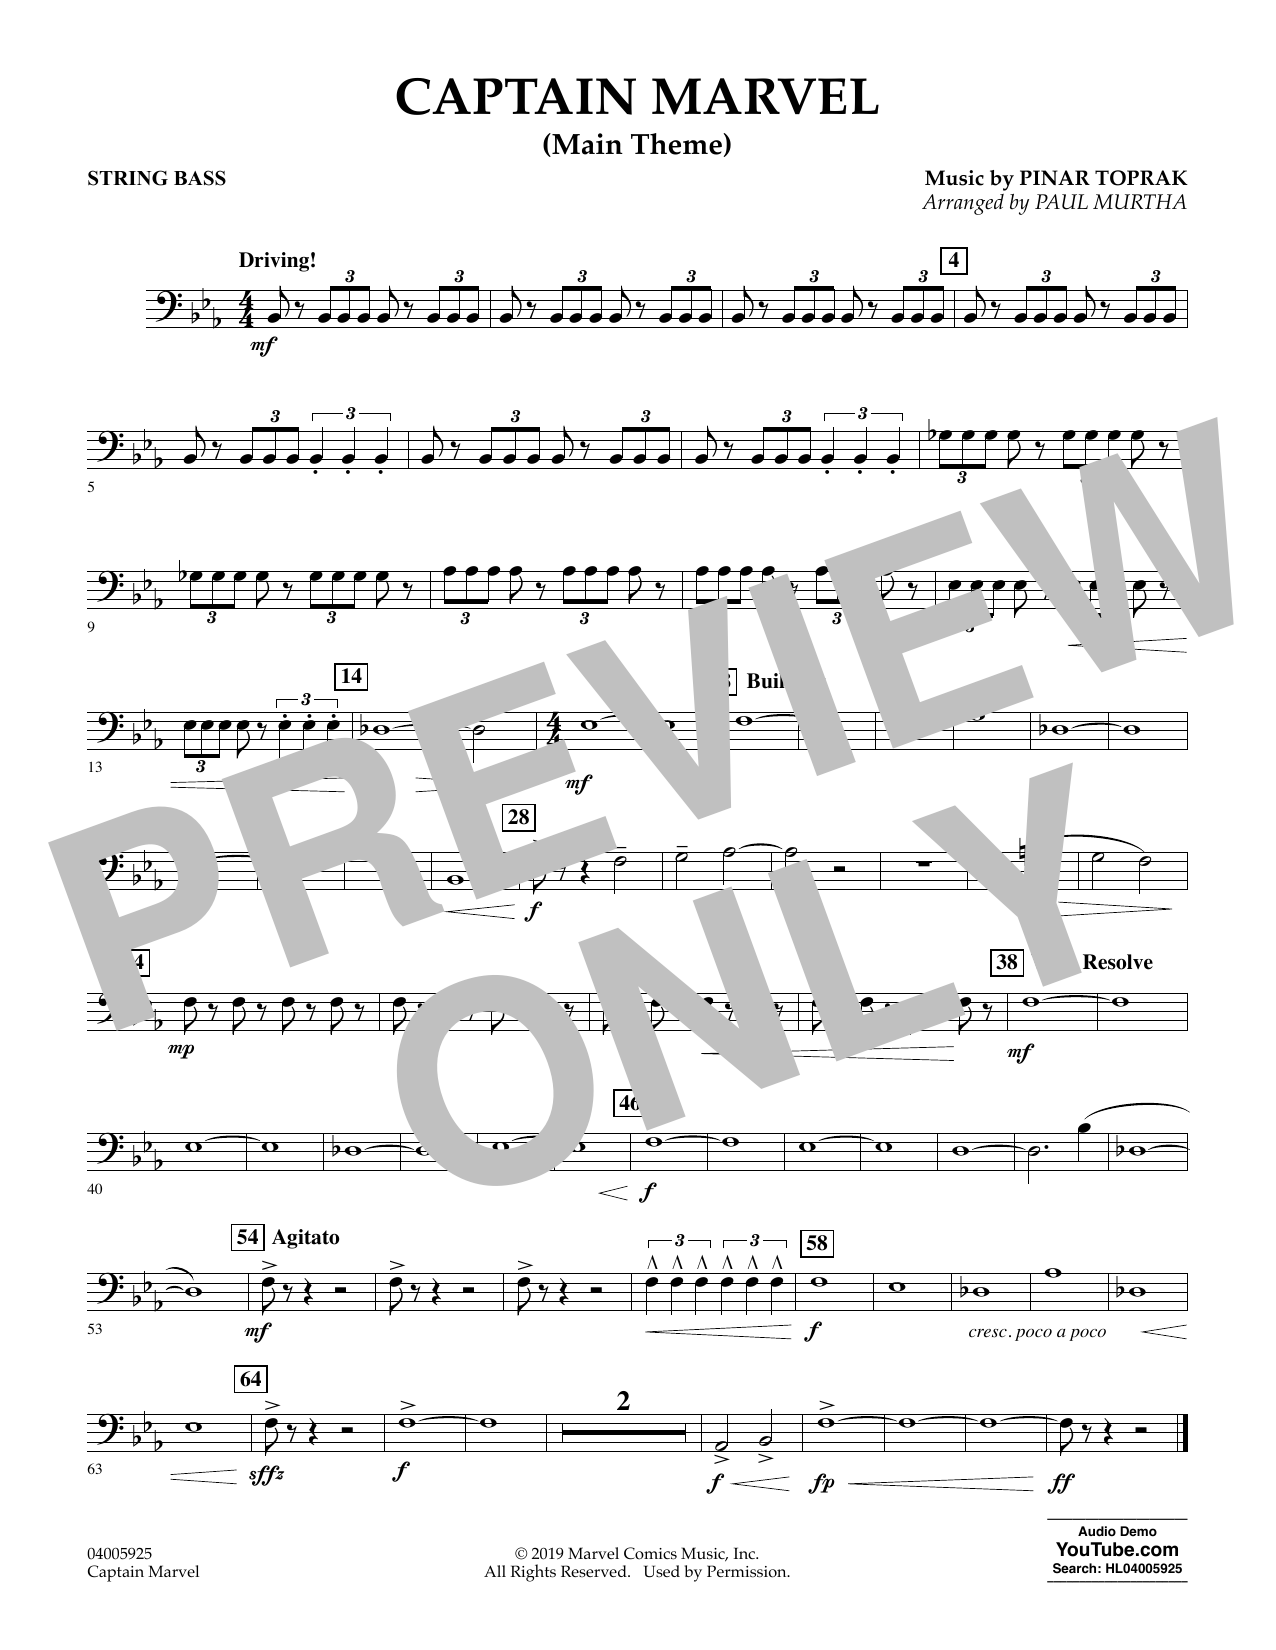 Pinar Toprak Captain Marvel (Main Theme) (arr. Paul Murtha) - String Bass sheet music preview music notes and score for Concert Band including 1 page(s)